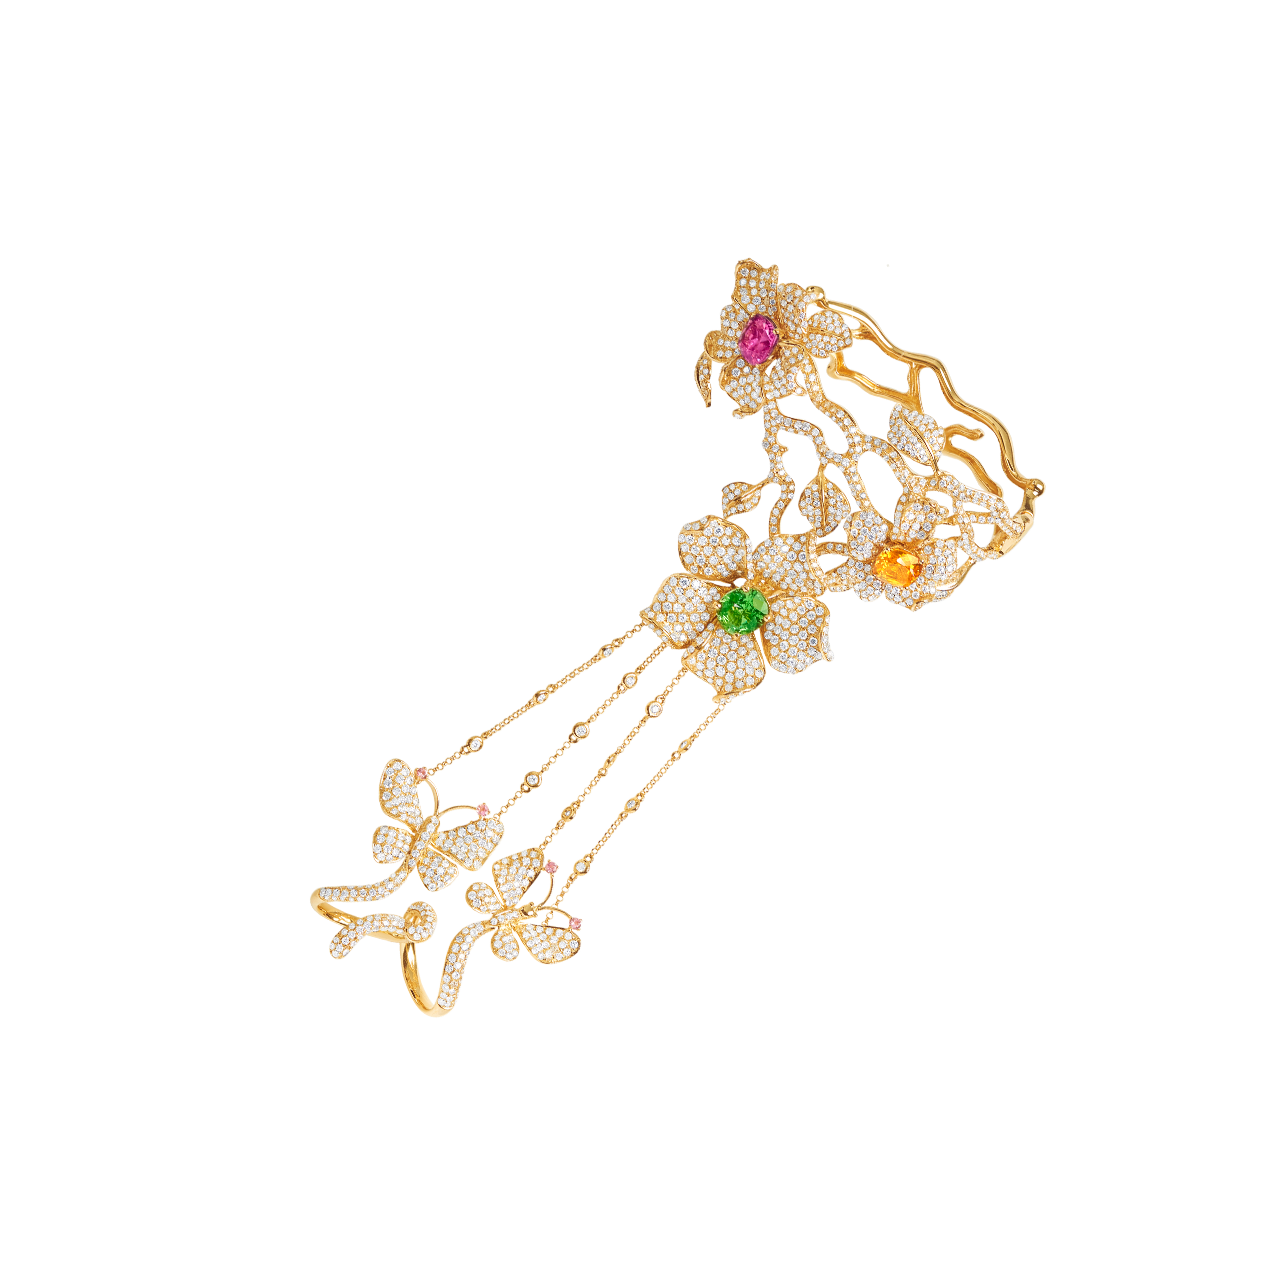 桐花彩寶鑽石戒鍊手環 69.94公克